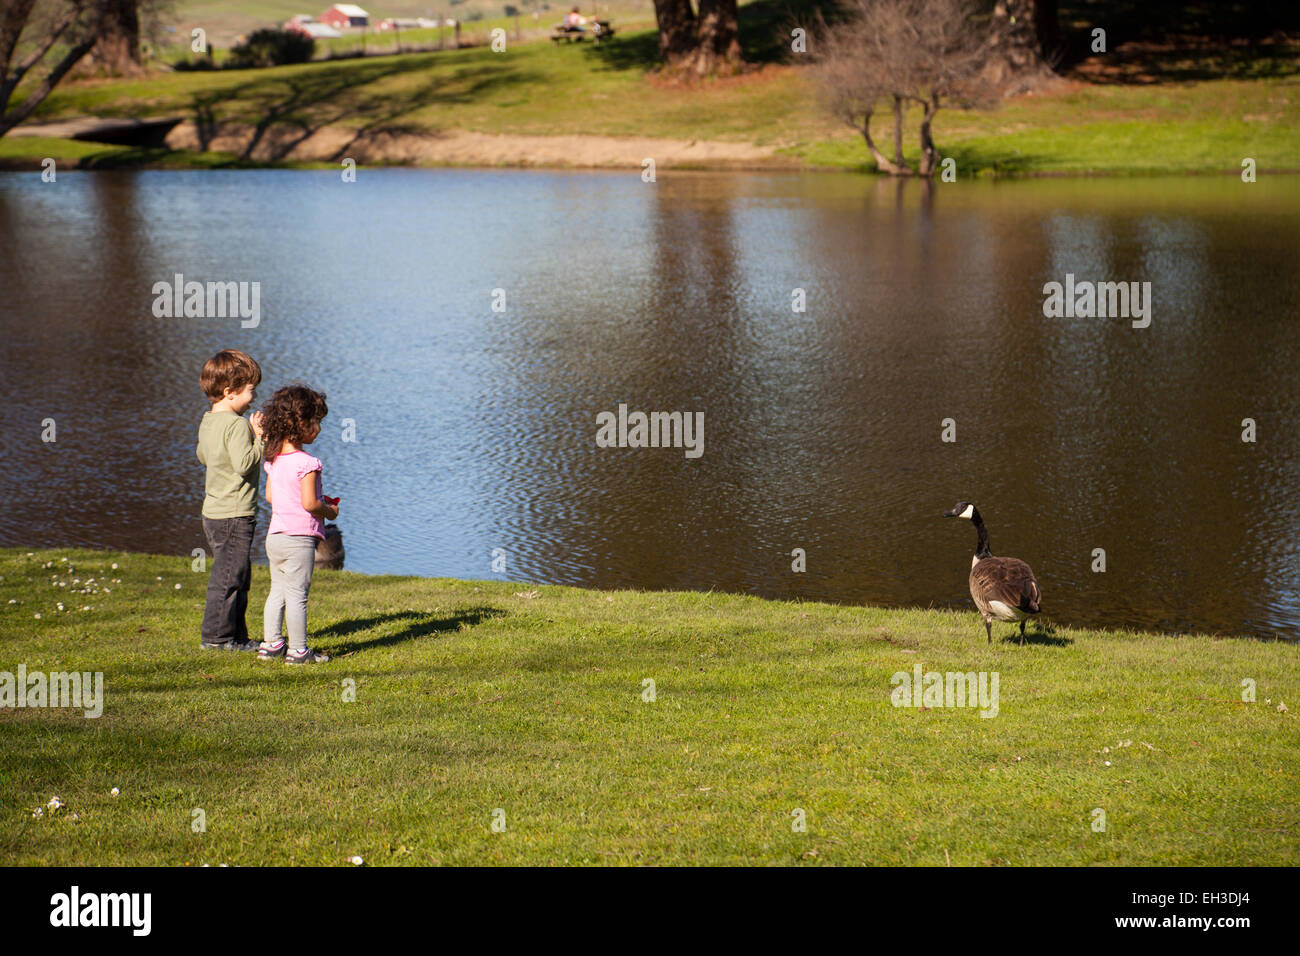 Two three year-olds feeding the geese at a pond, Petaluma, California, USA - Stock Image